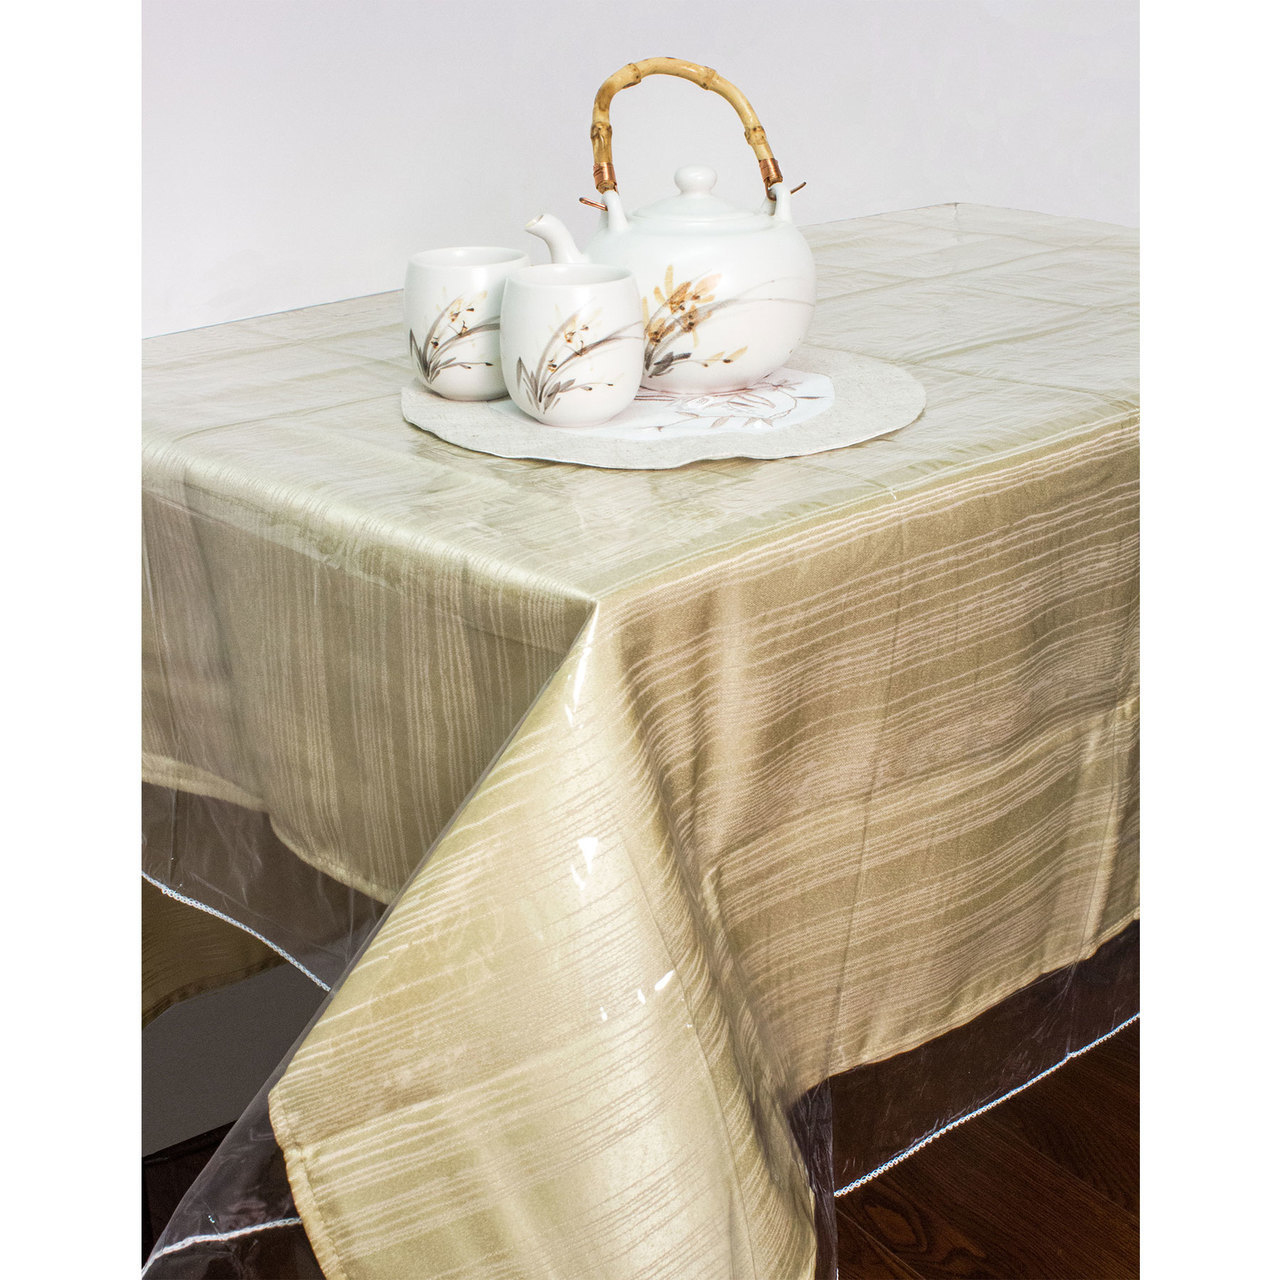 """Clear Vinyl Tablecloth Protector, Durable Double Stitched Edges Dining Tablecloth Cover (52""""x70"""")"""